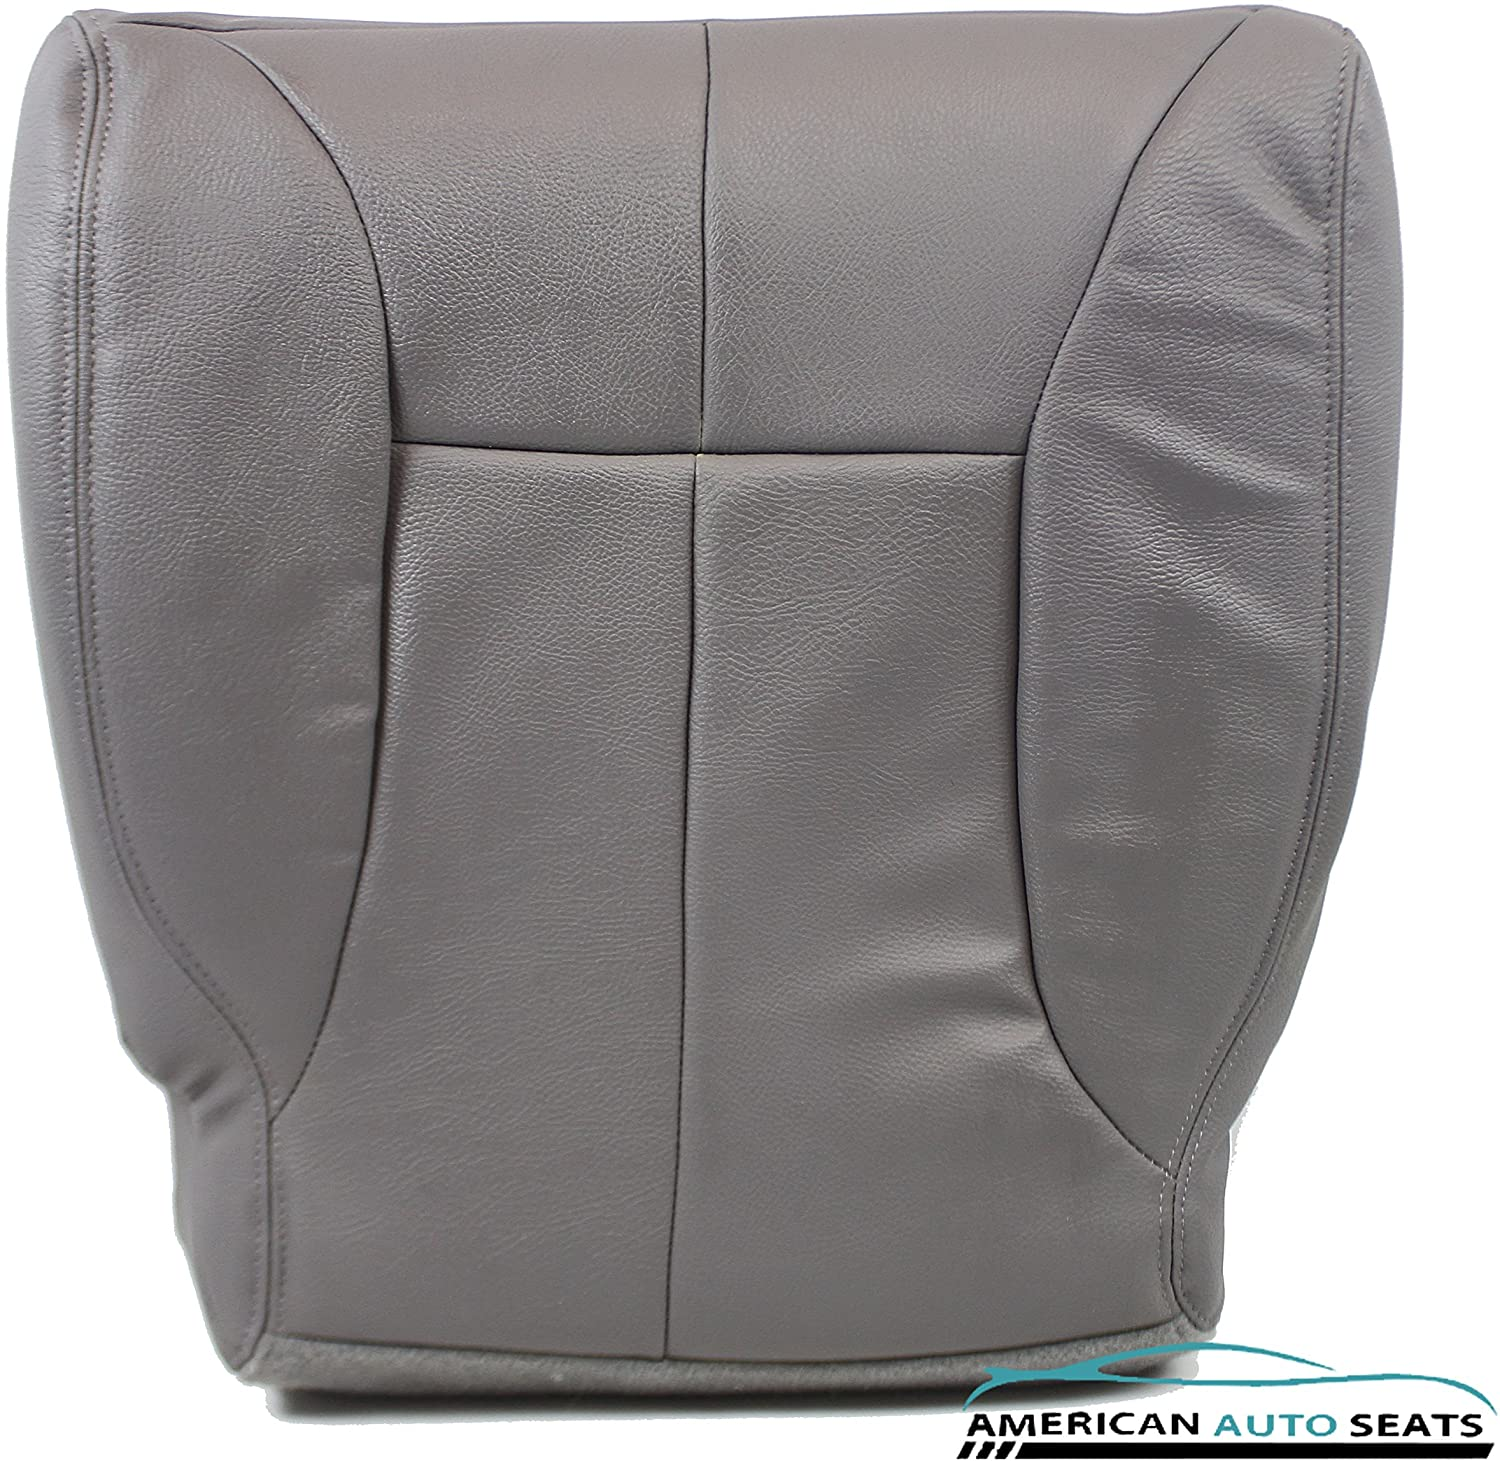 US Auto Upholstery Compatible with 1998 1999 Dodge Ram 1500 SLT -PASSENGER Side Bottom Synthetic Leather Seat Cover GRAY